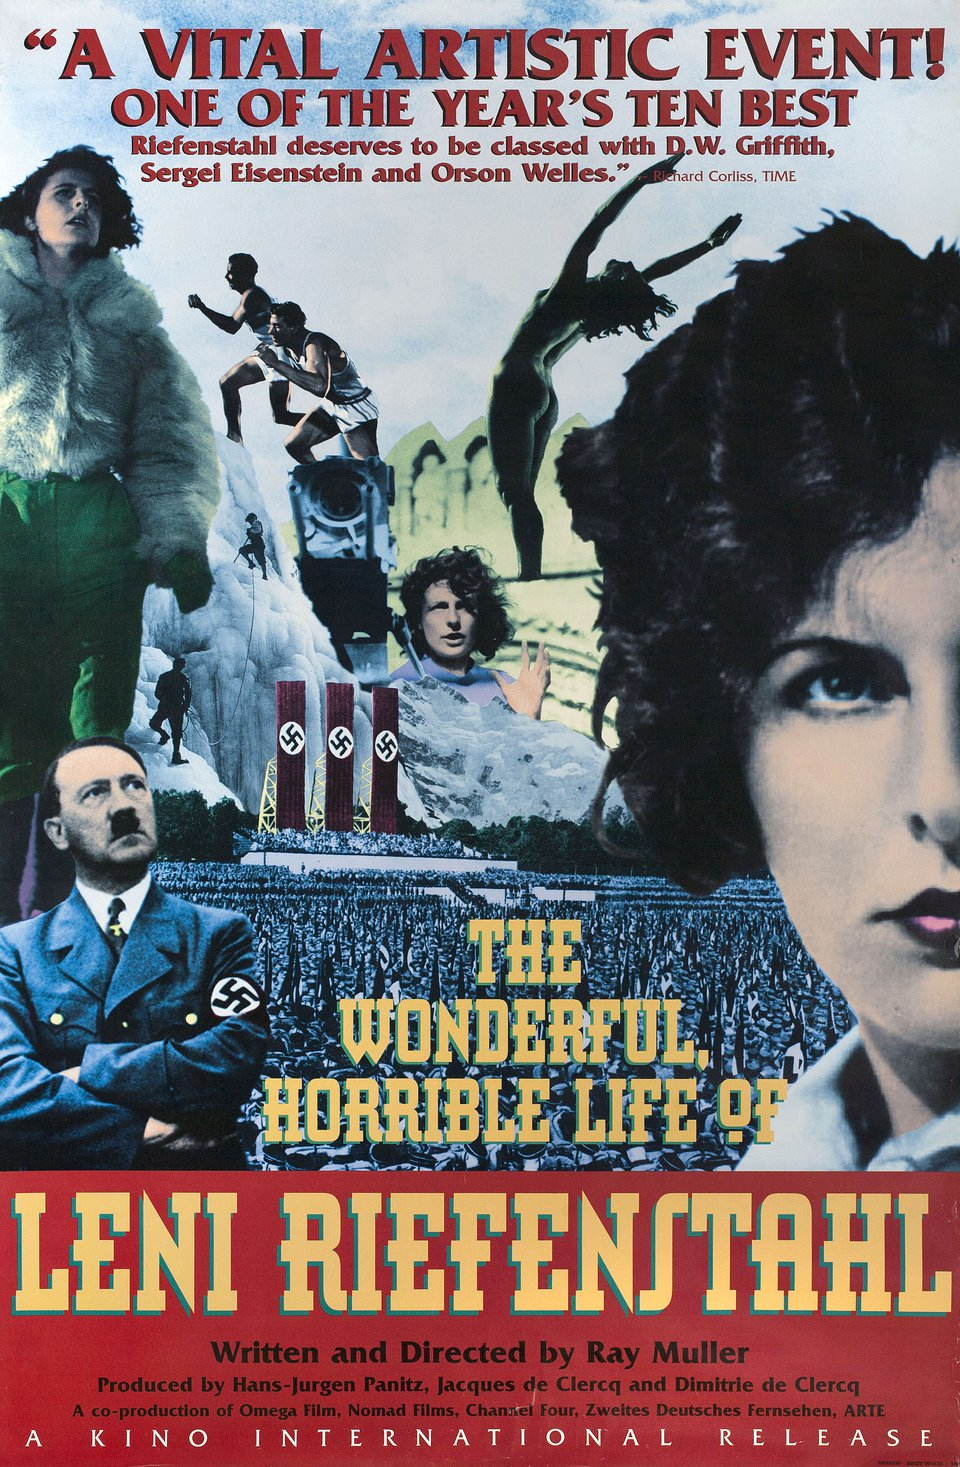 The Wonderful Horrible Life of Leni Riefenstahl